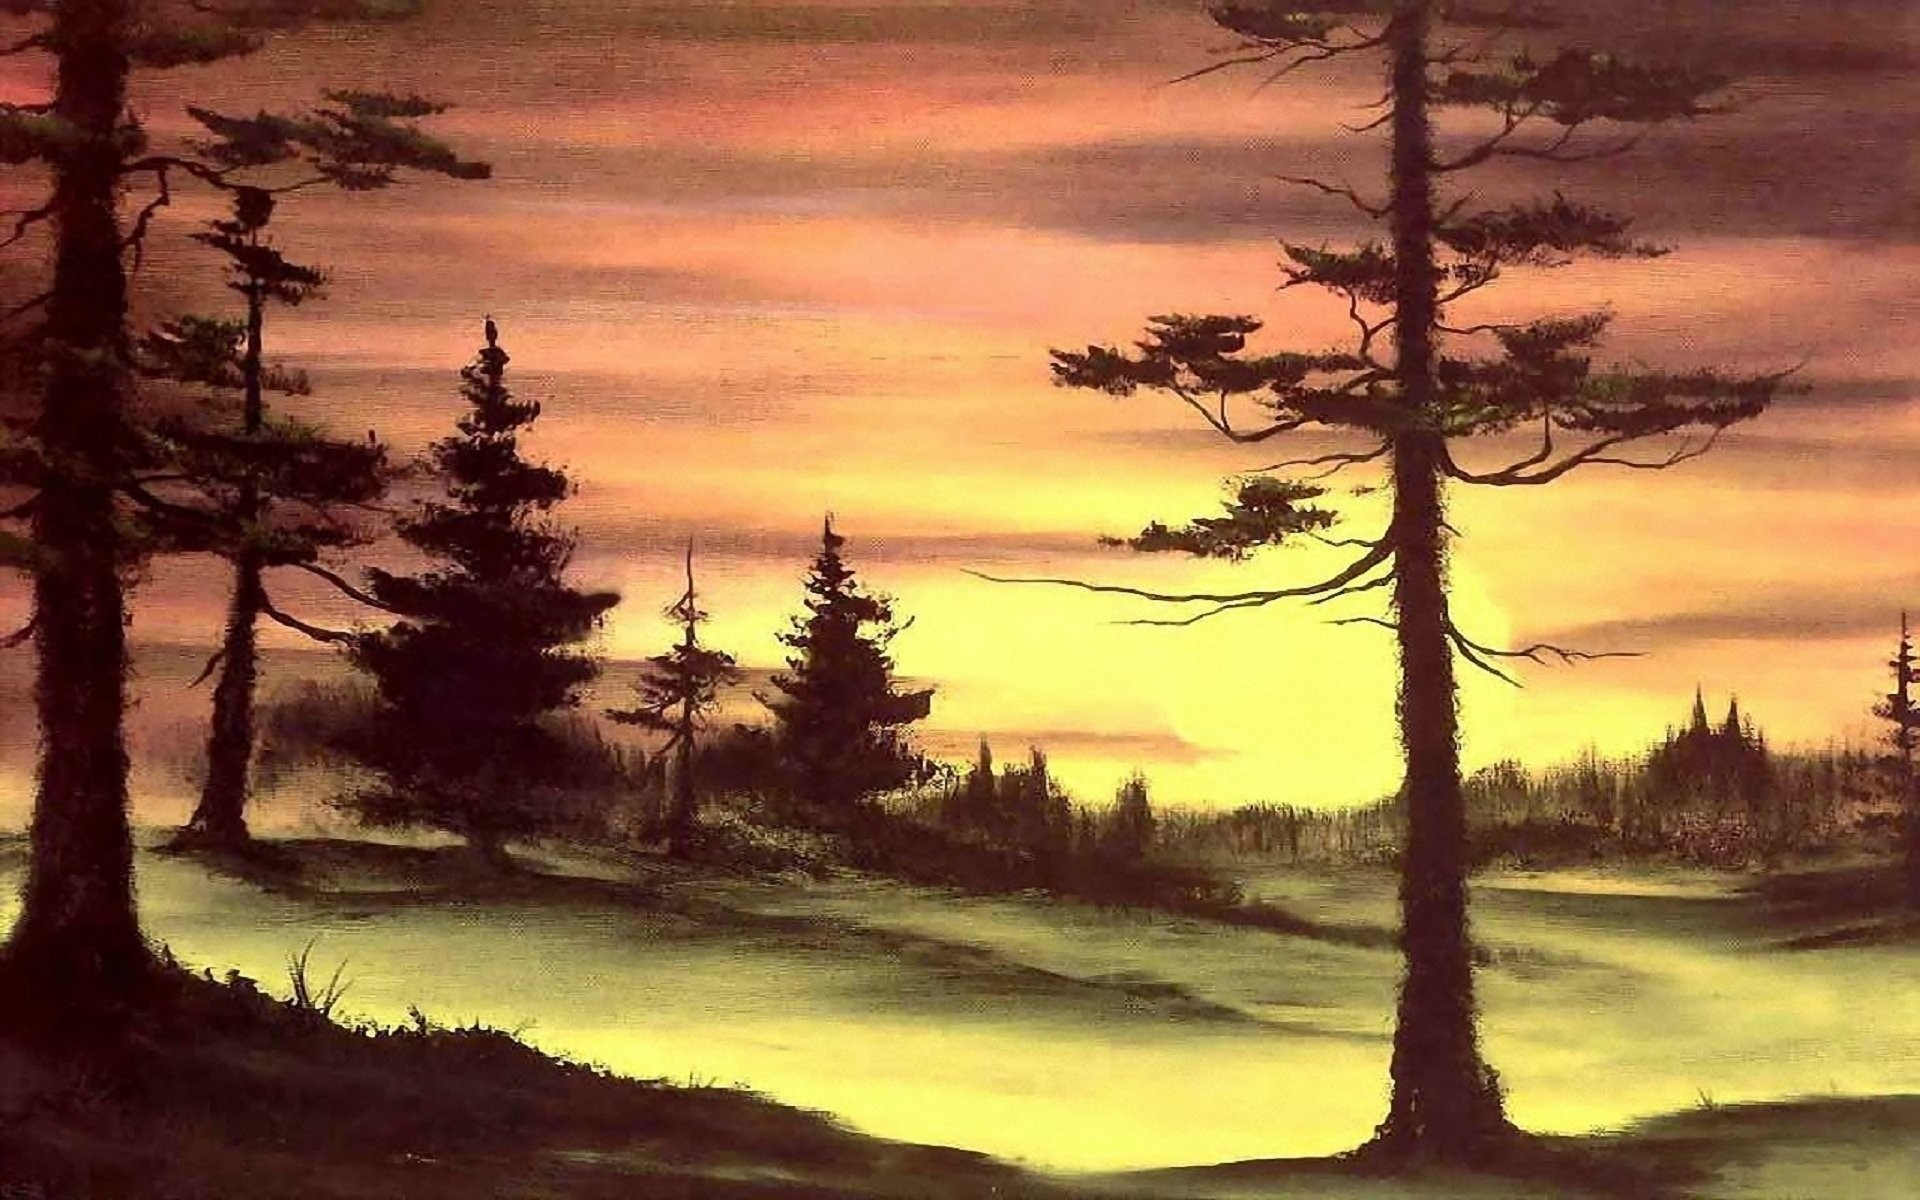 Res: 1920x1200, painting bob ross pattern nature sunset sun forest tree